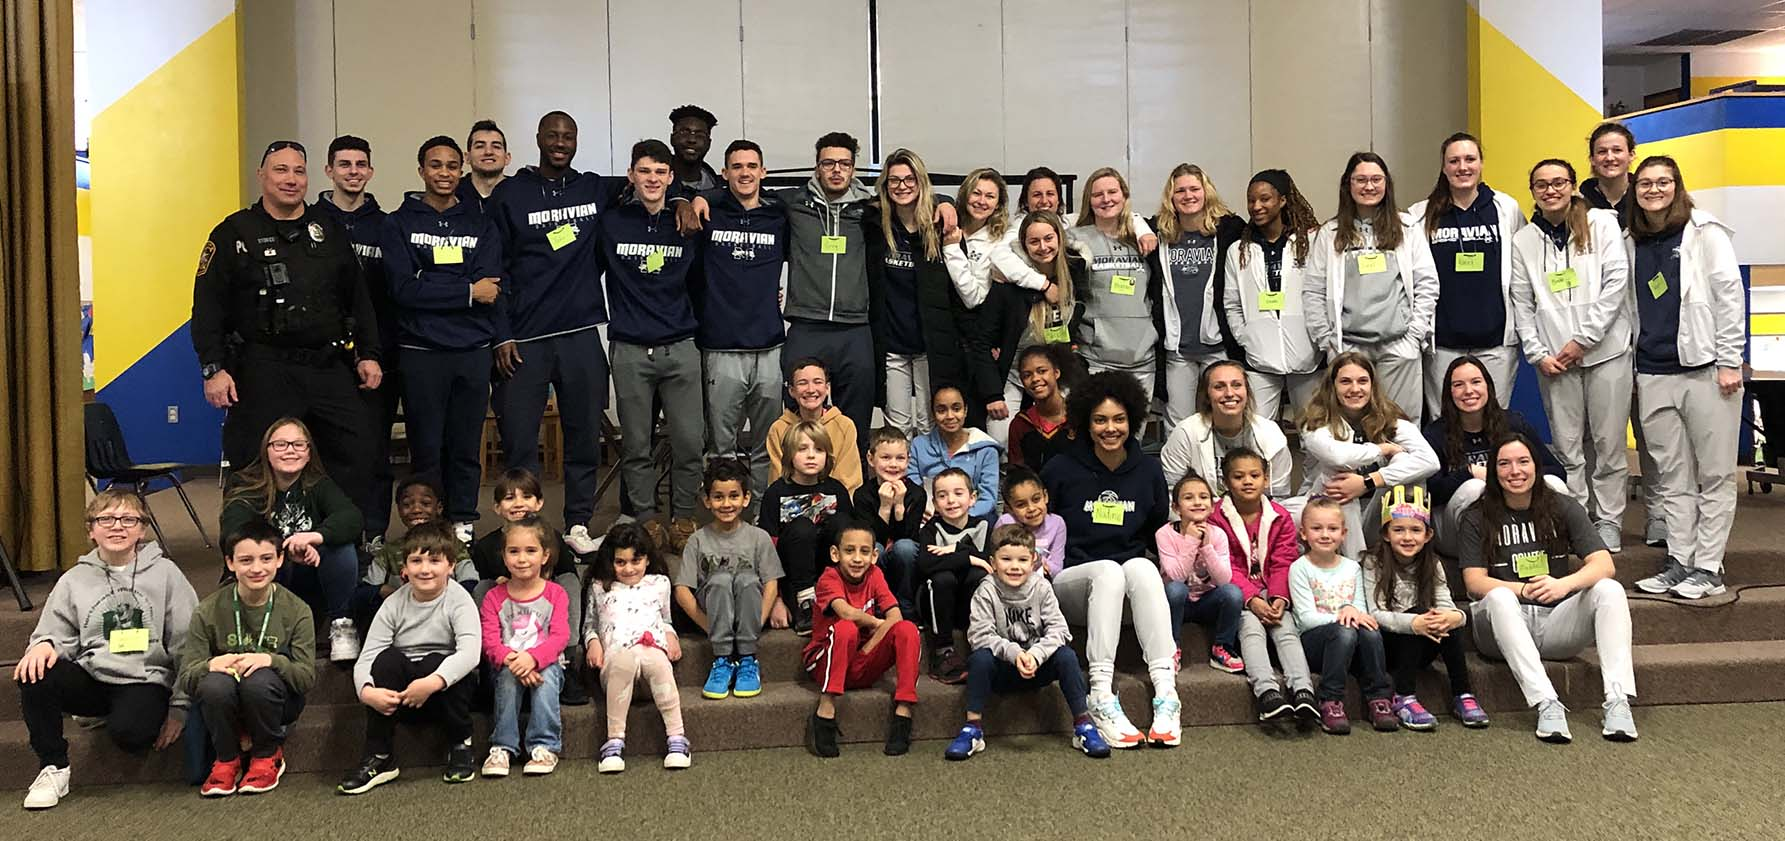 Moravian College basketball players gather with children from William Penn Elementary for a photo op.